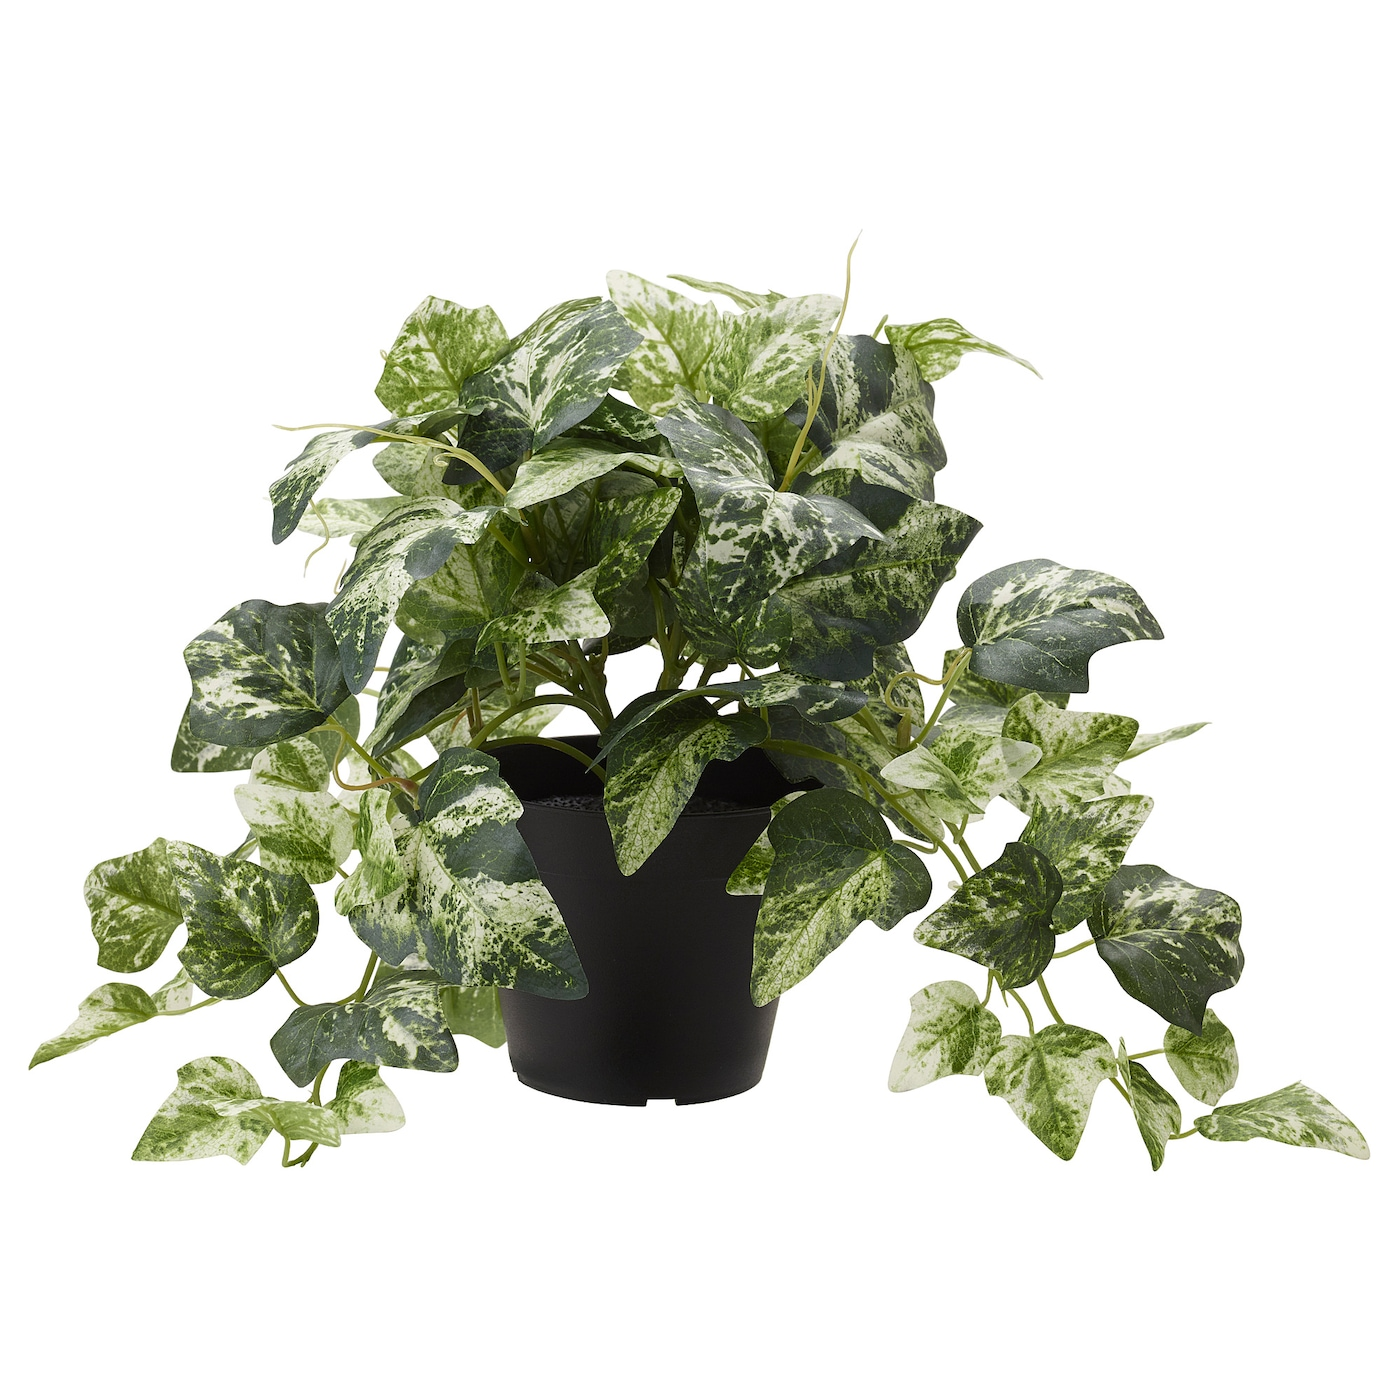 IKEA FEJKA plante artificielle en pot